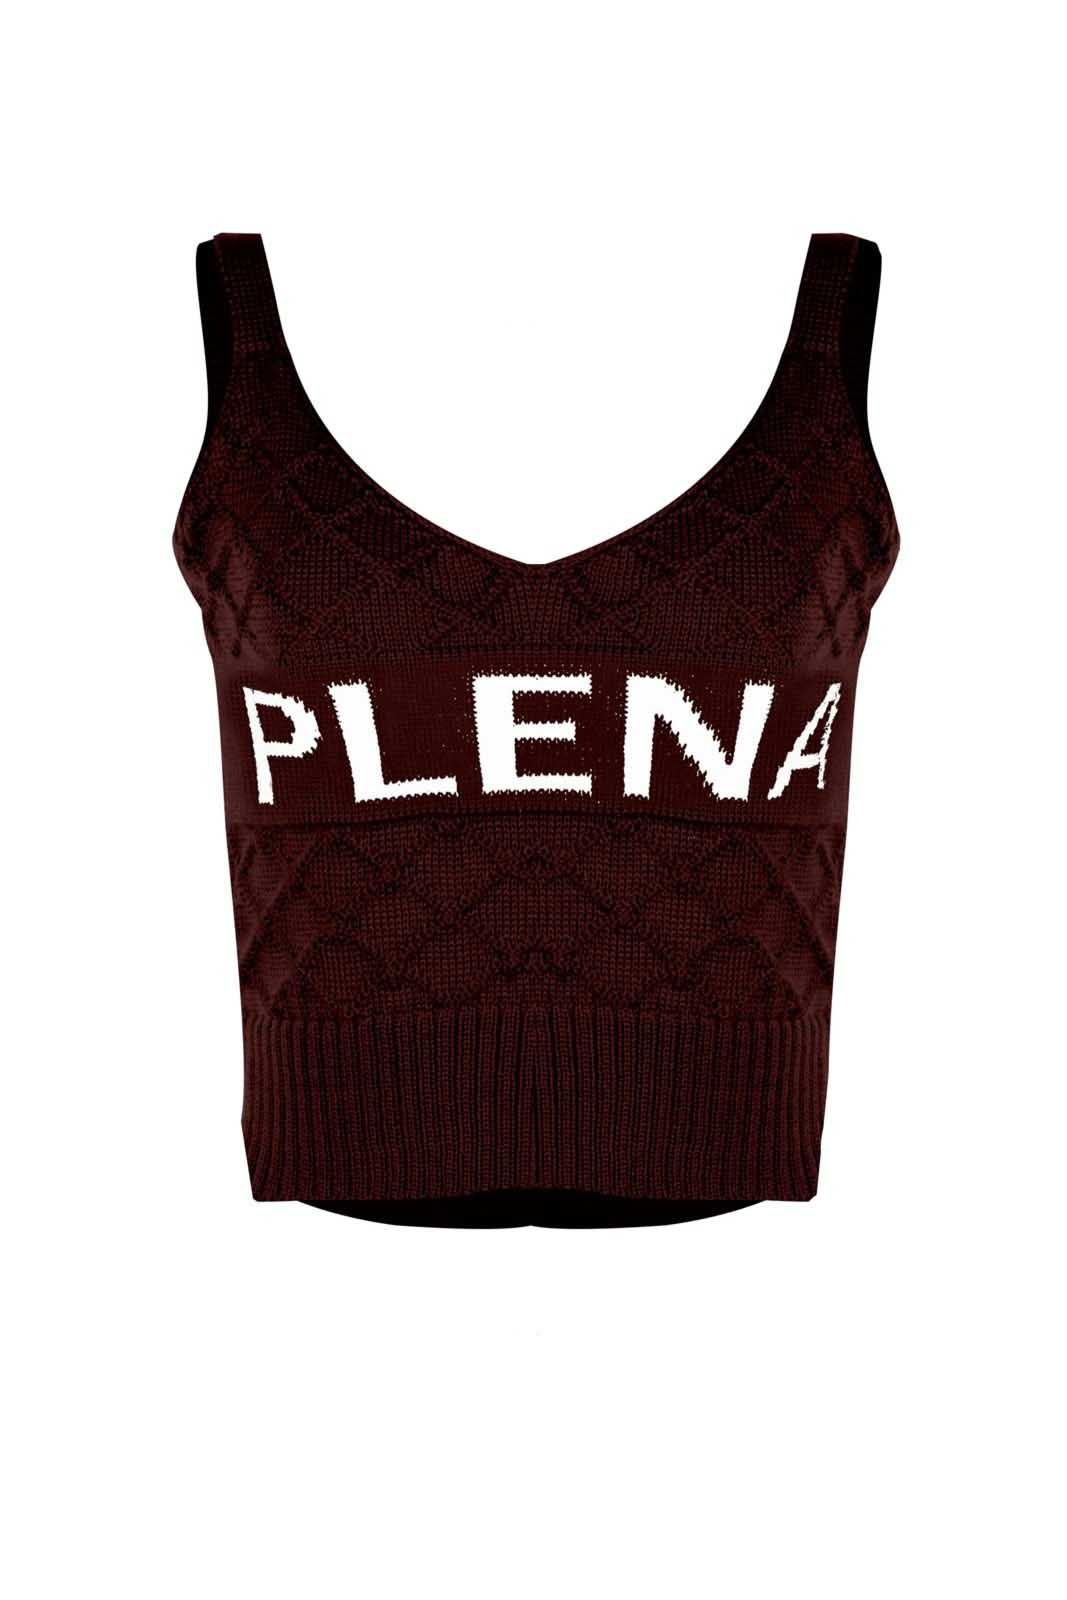 Top Outlet Dri Cropped Tricot Estampado Estampa Plena Vinho